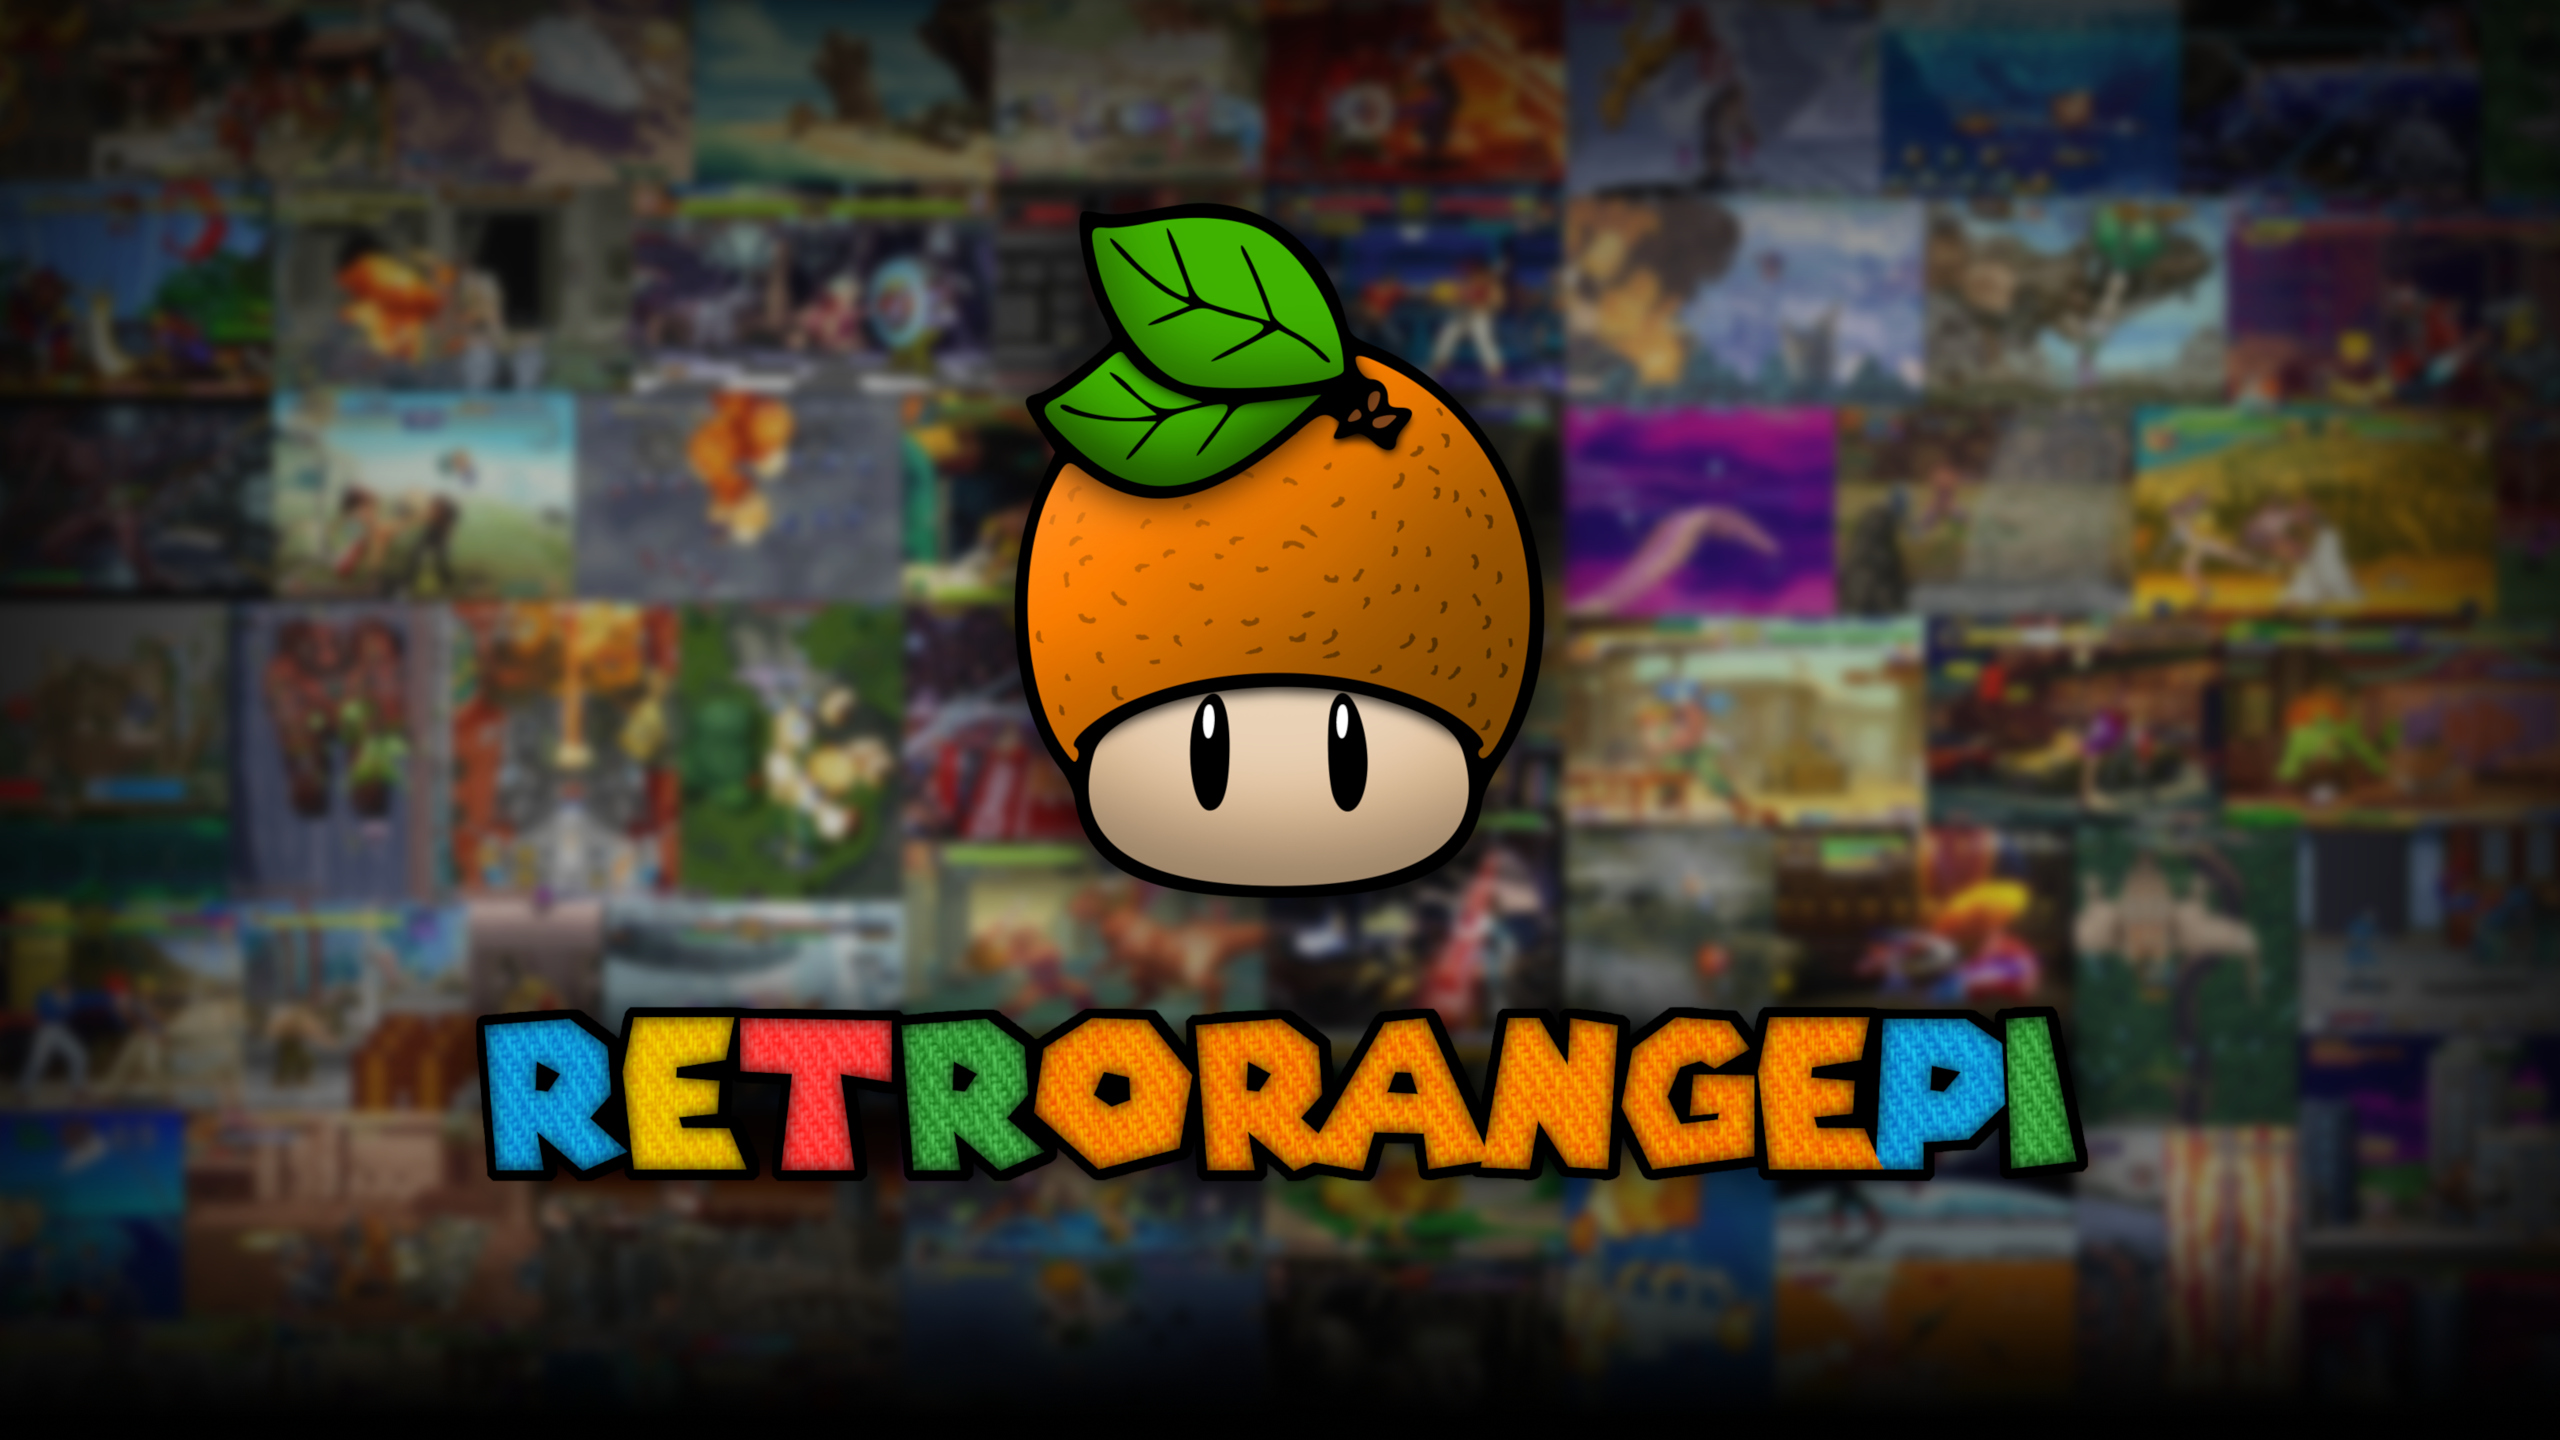 About RetrOrangePi